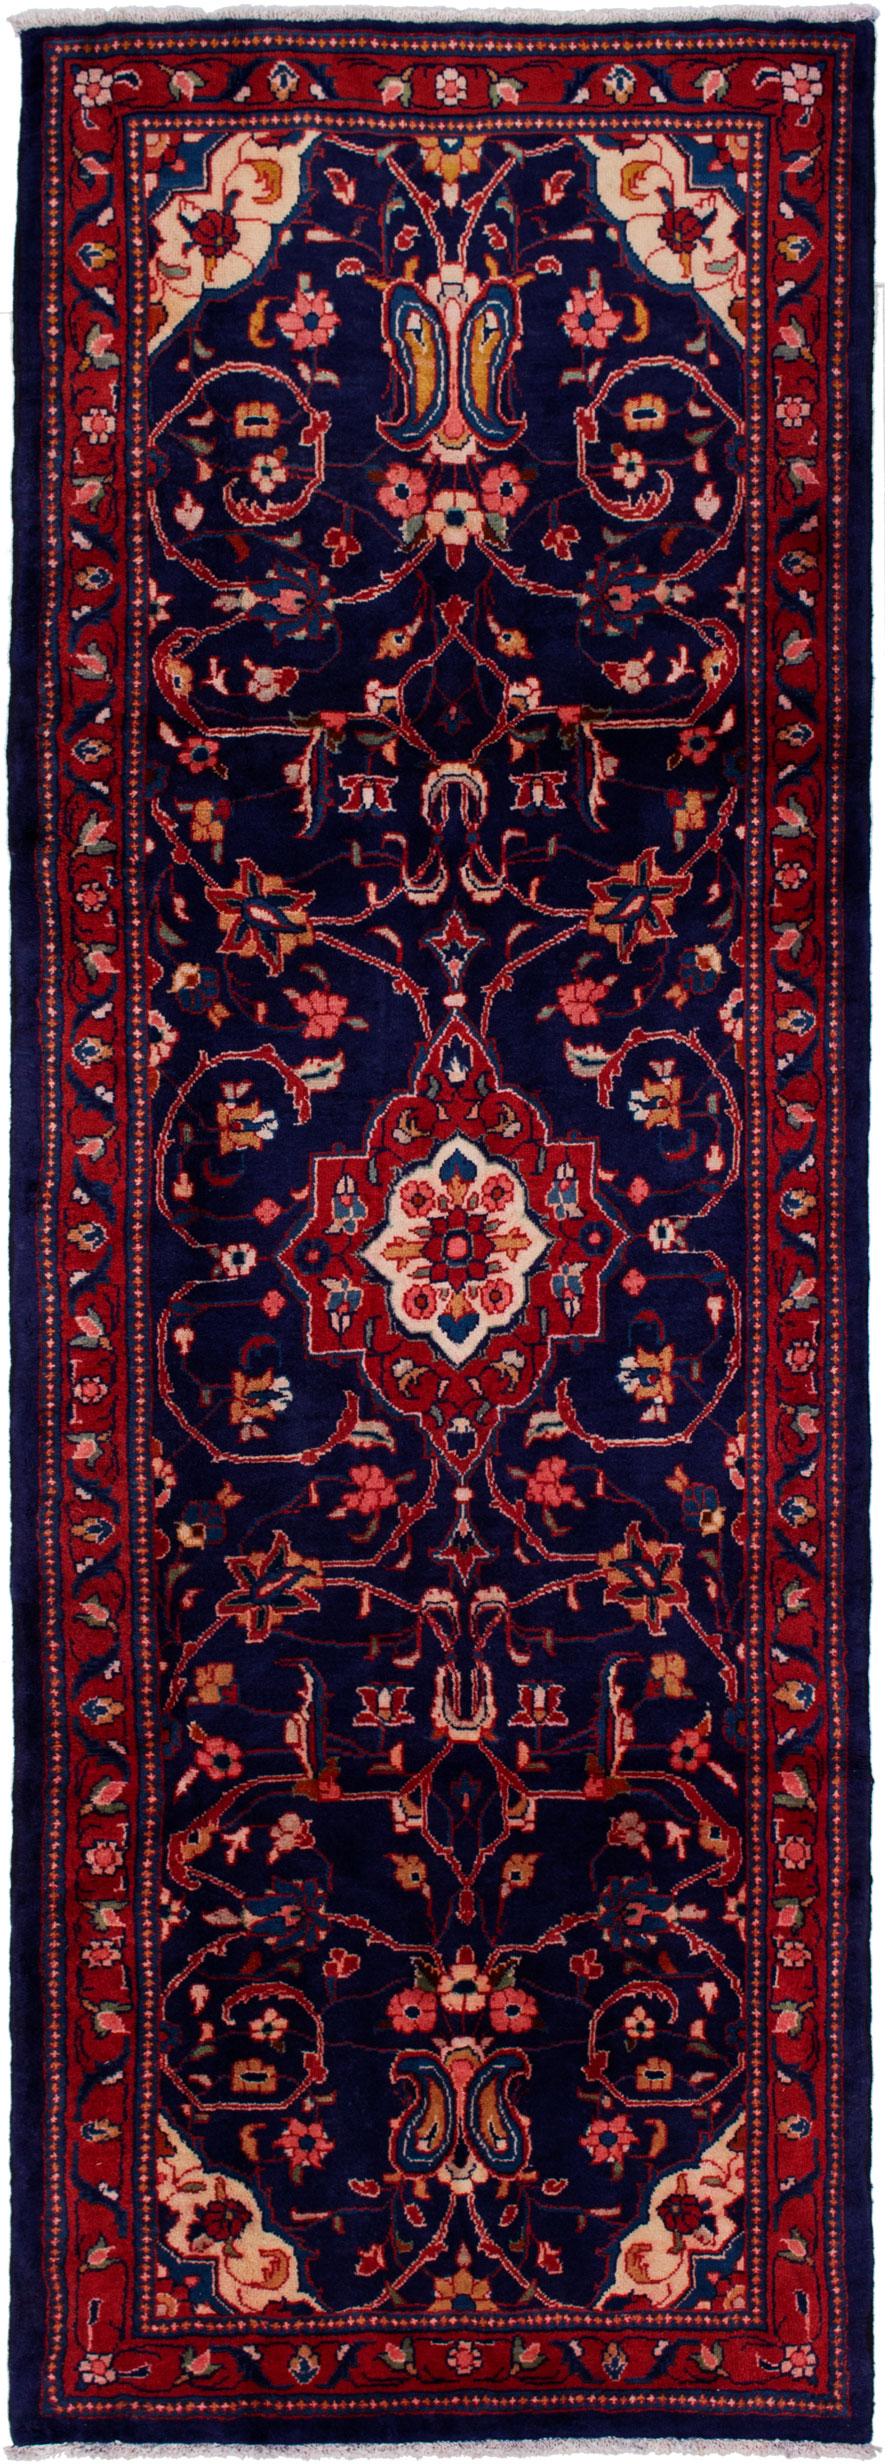 """Hand-knotted Mahal Navy Blue Wool Rug 3'6"""" x 9'11"""" Size: 3'6"""" x 9'11"""""""